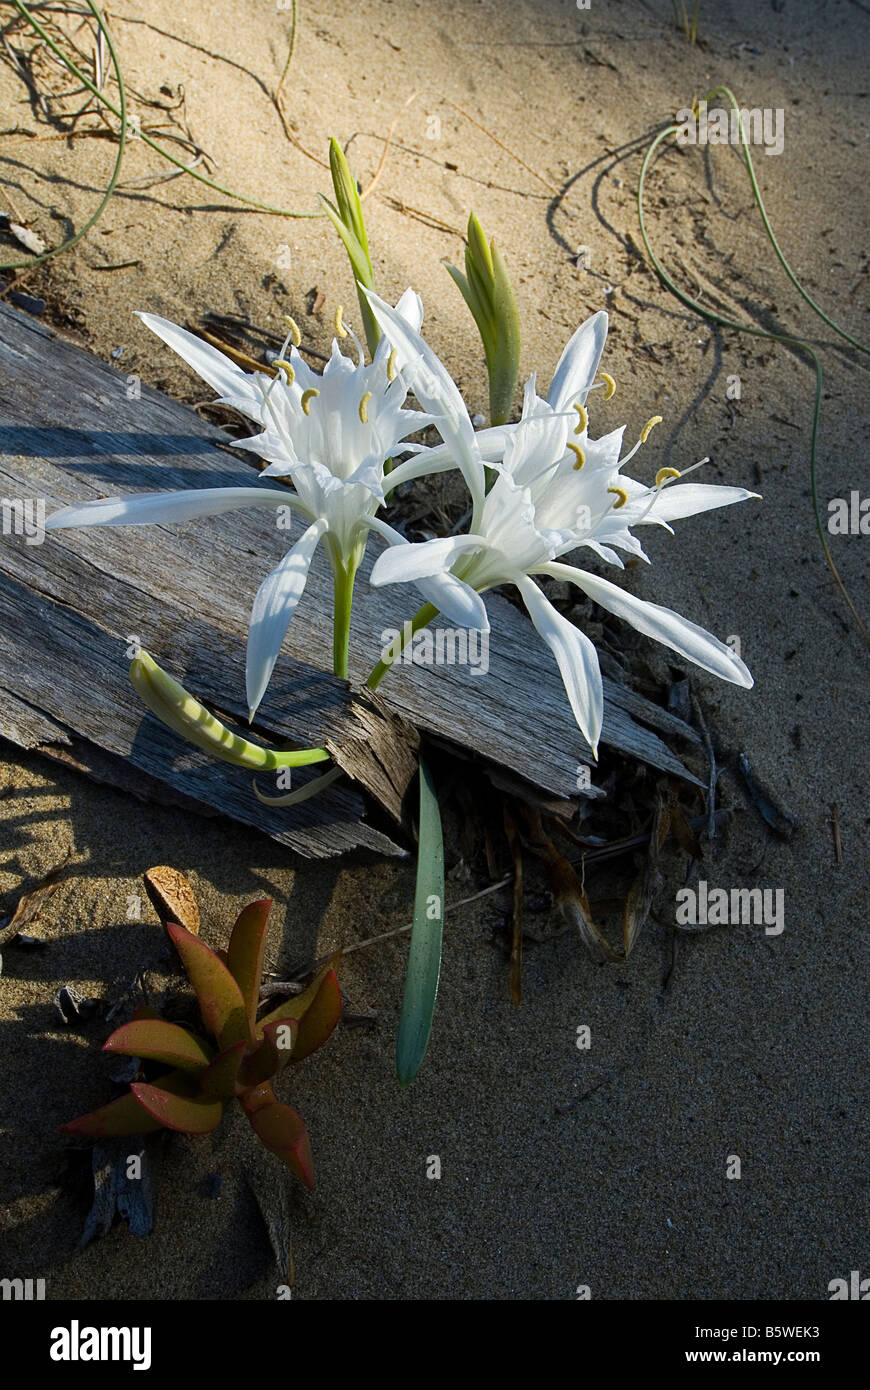 flowering of Pancratium maritimum in the national park of the Circeo in Italy - Stock Image